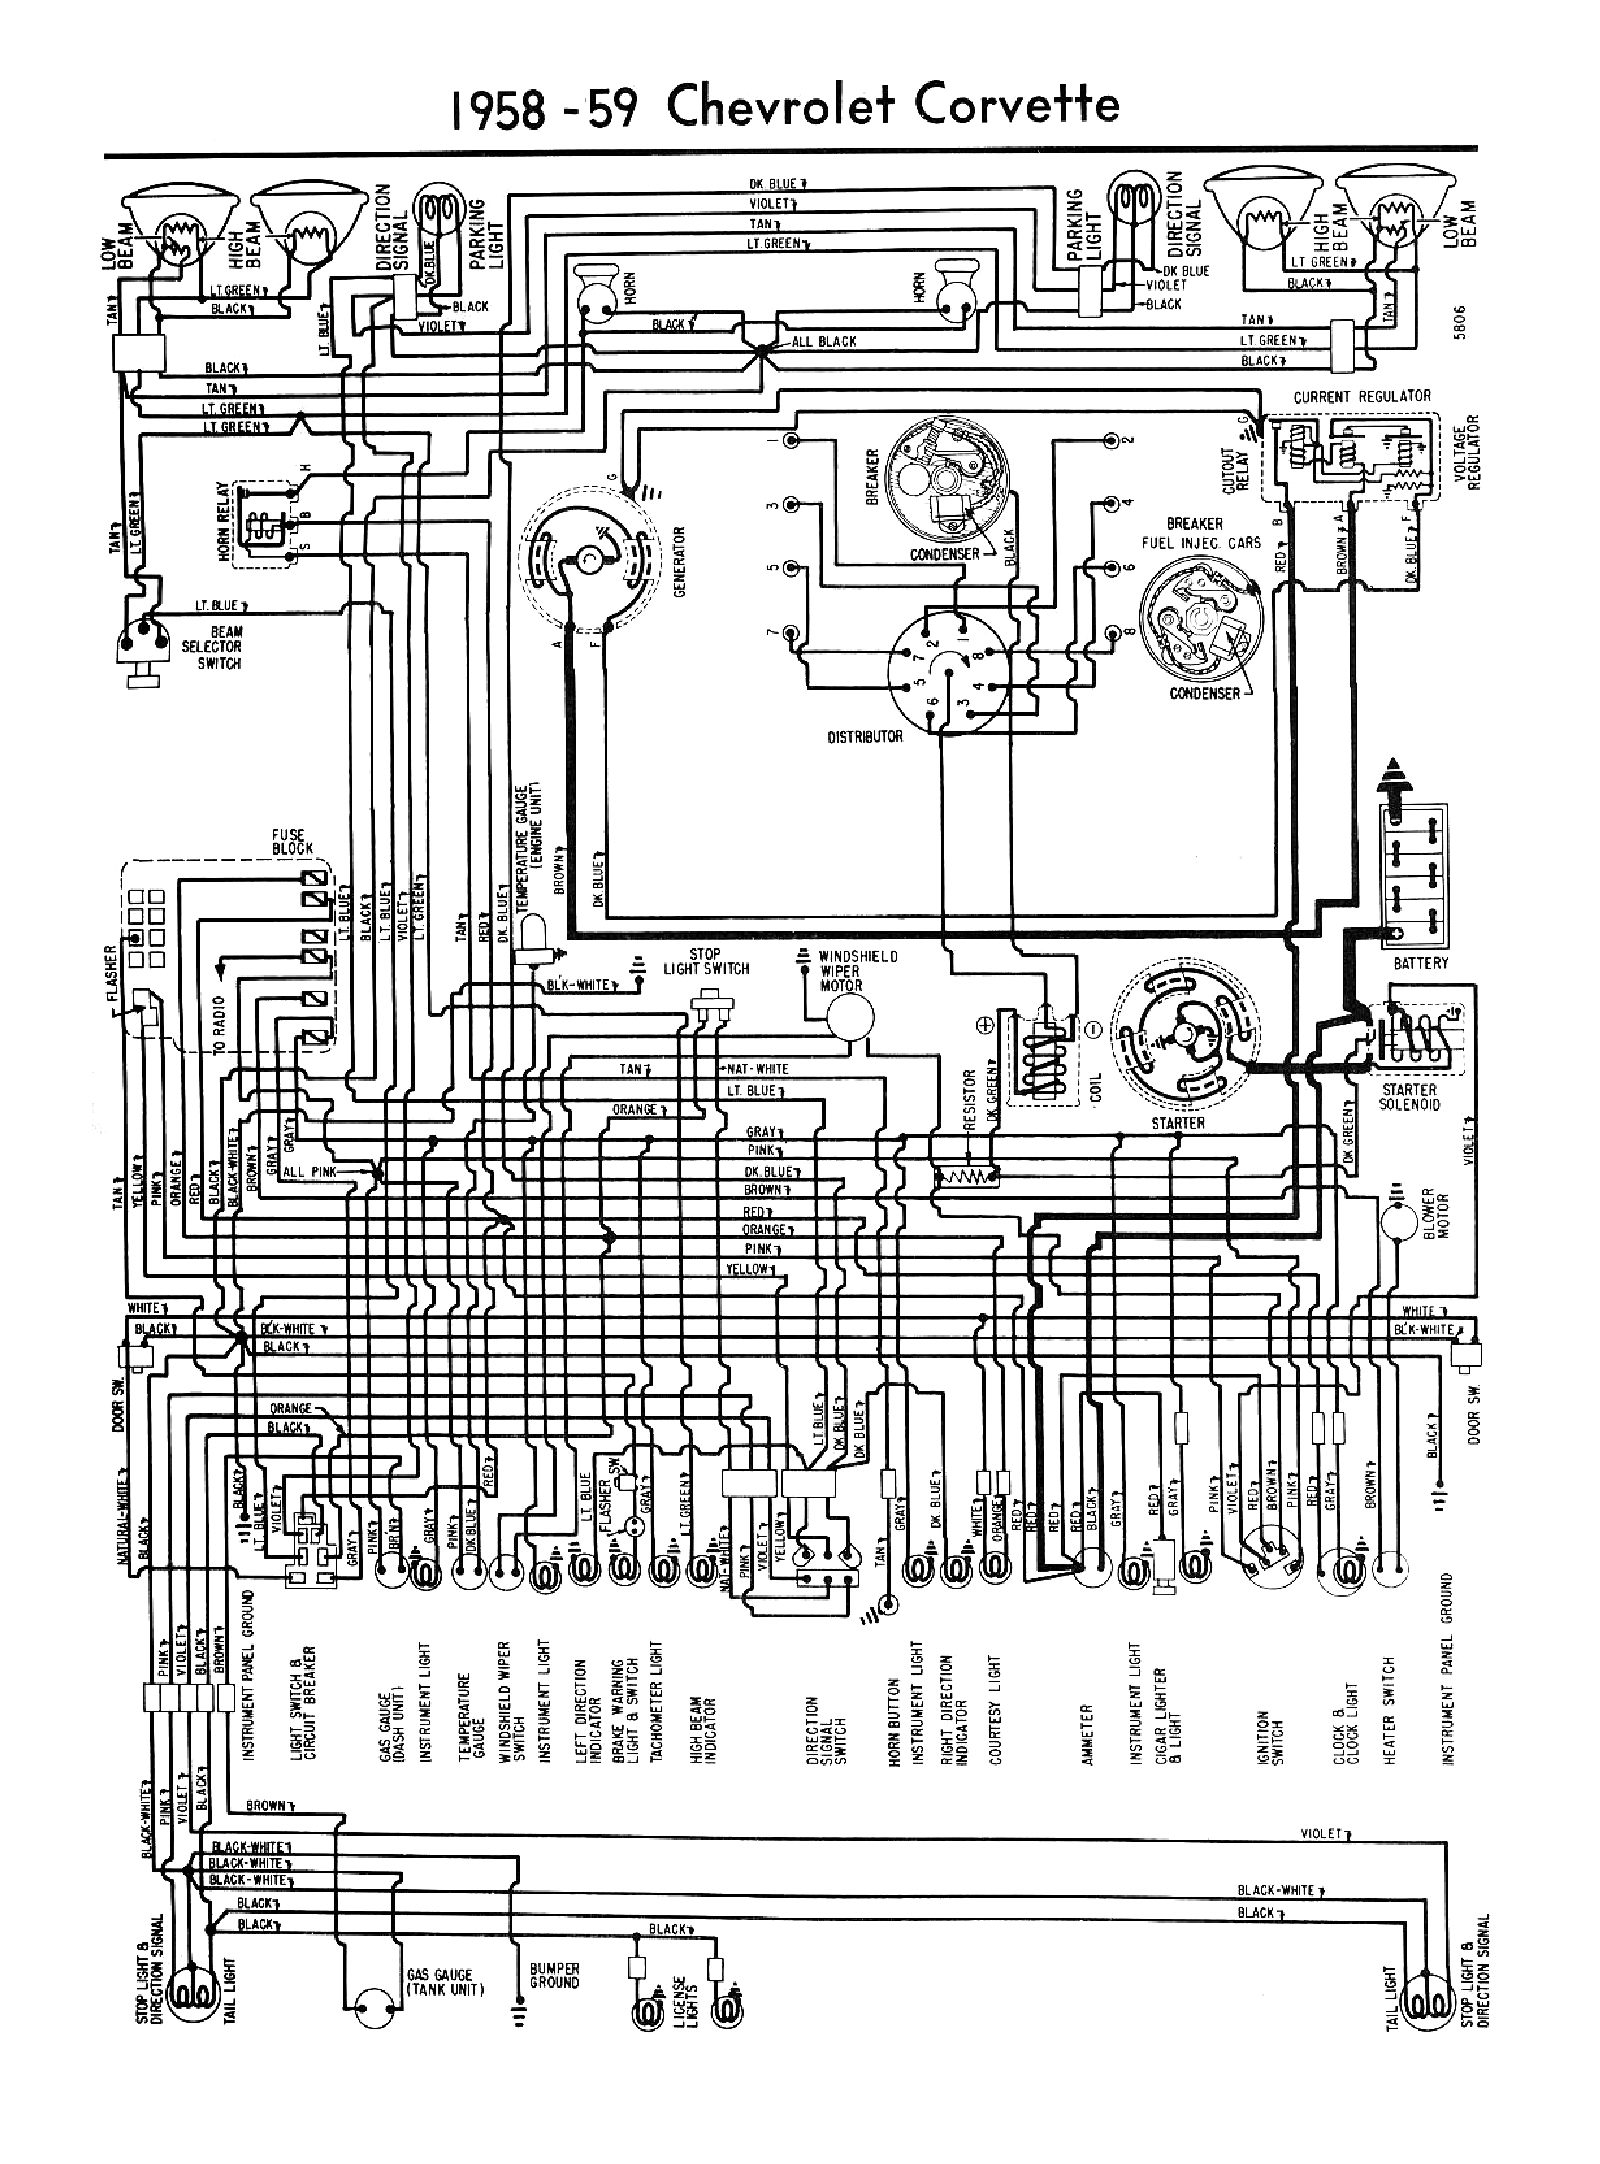 1958 Dodge Truck Wiring Diagram Libraries 1959 Chrysler Windsor Third Level1958 Diagrams Ram